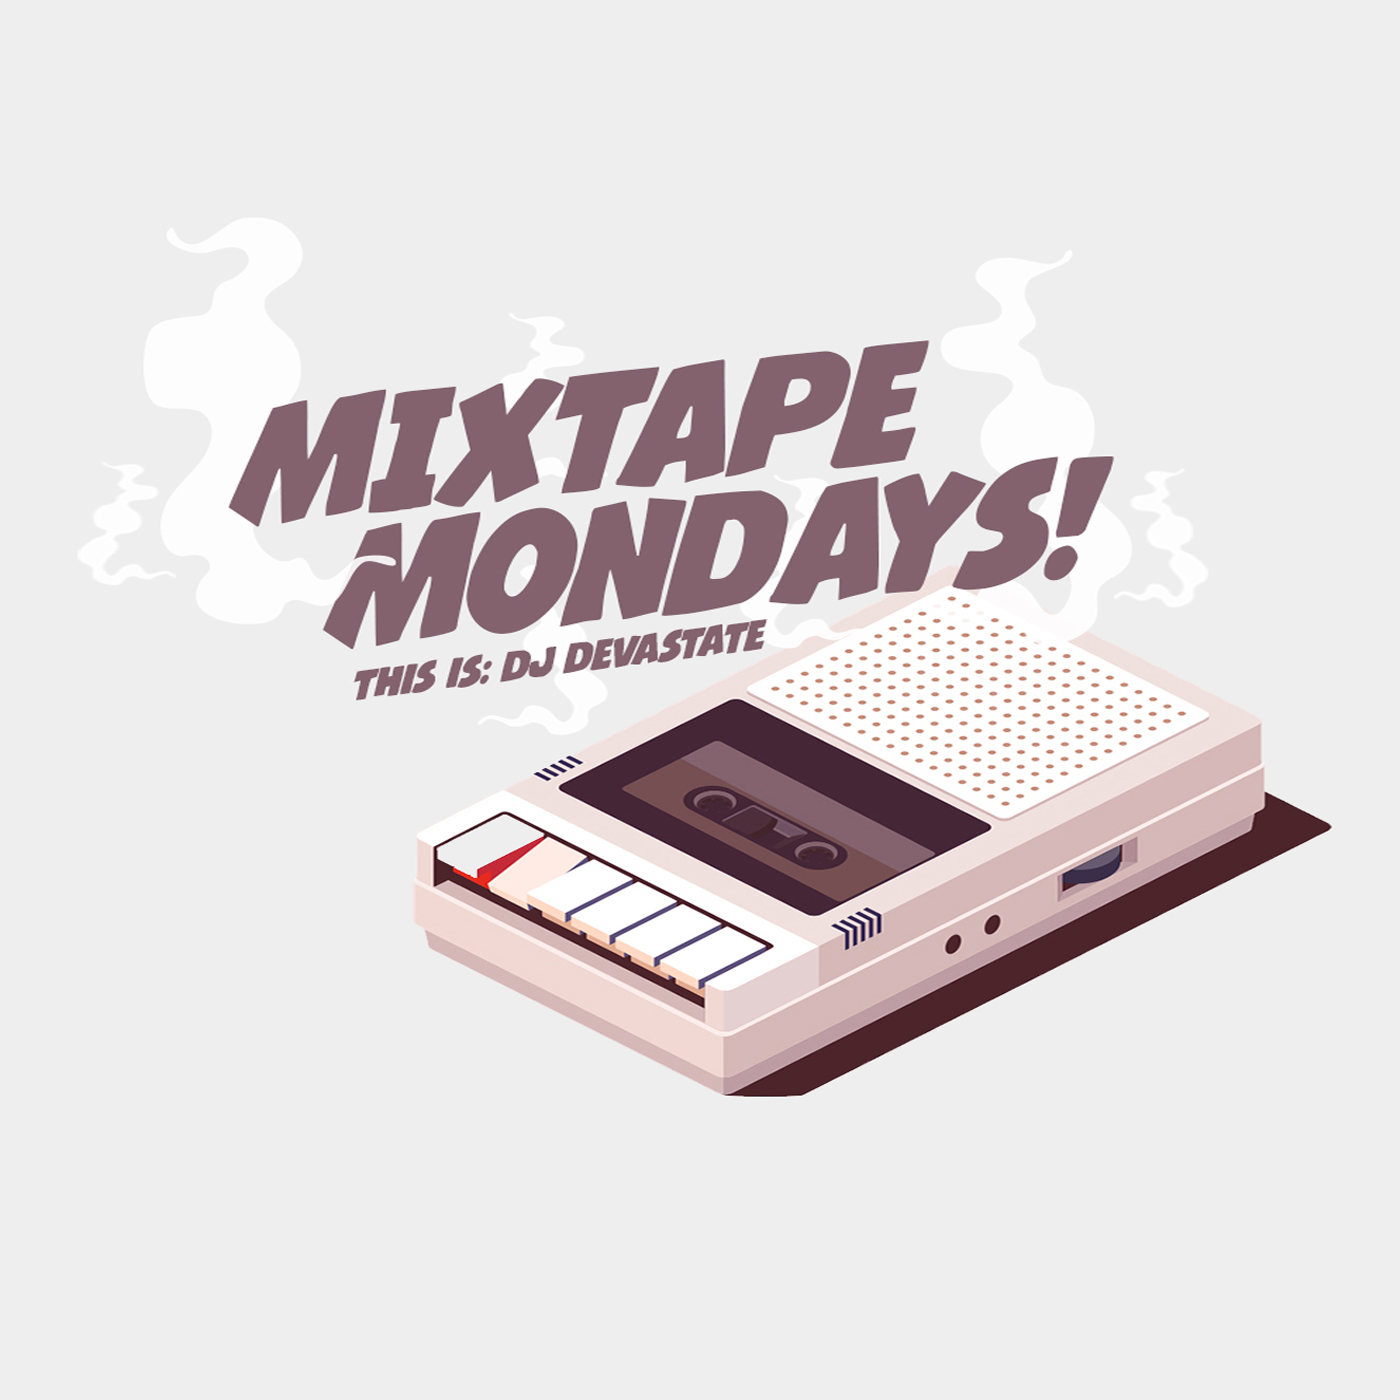 Mixtape Mondays - This is DJ Devastate.